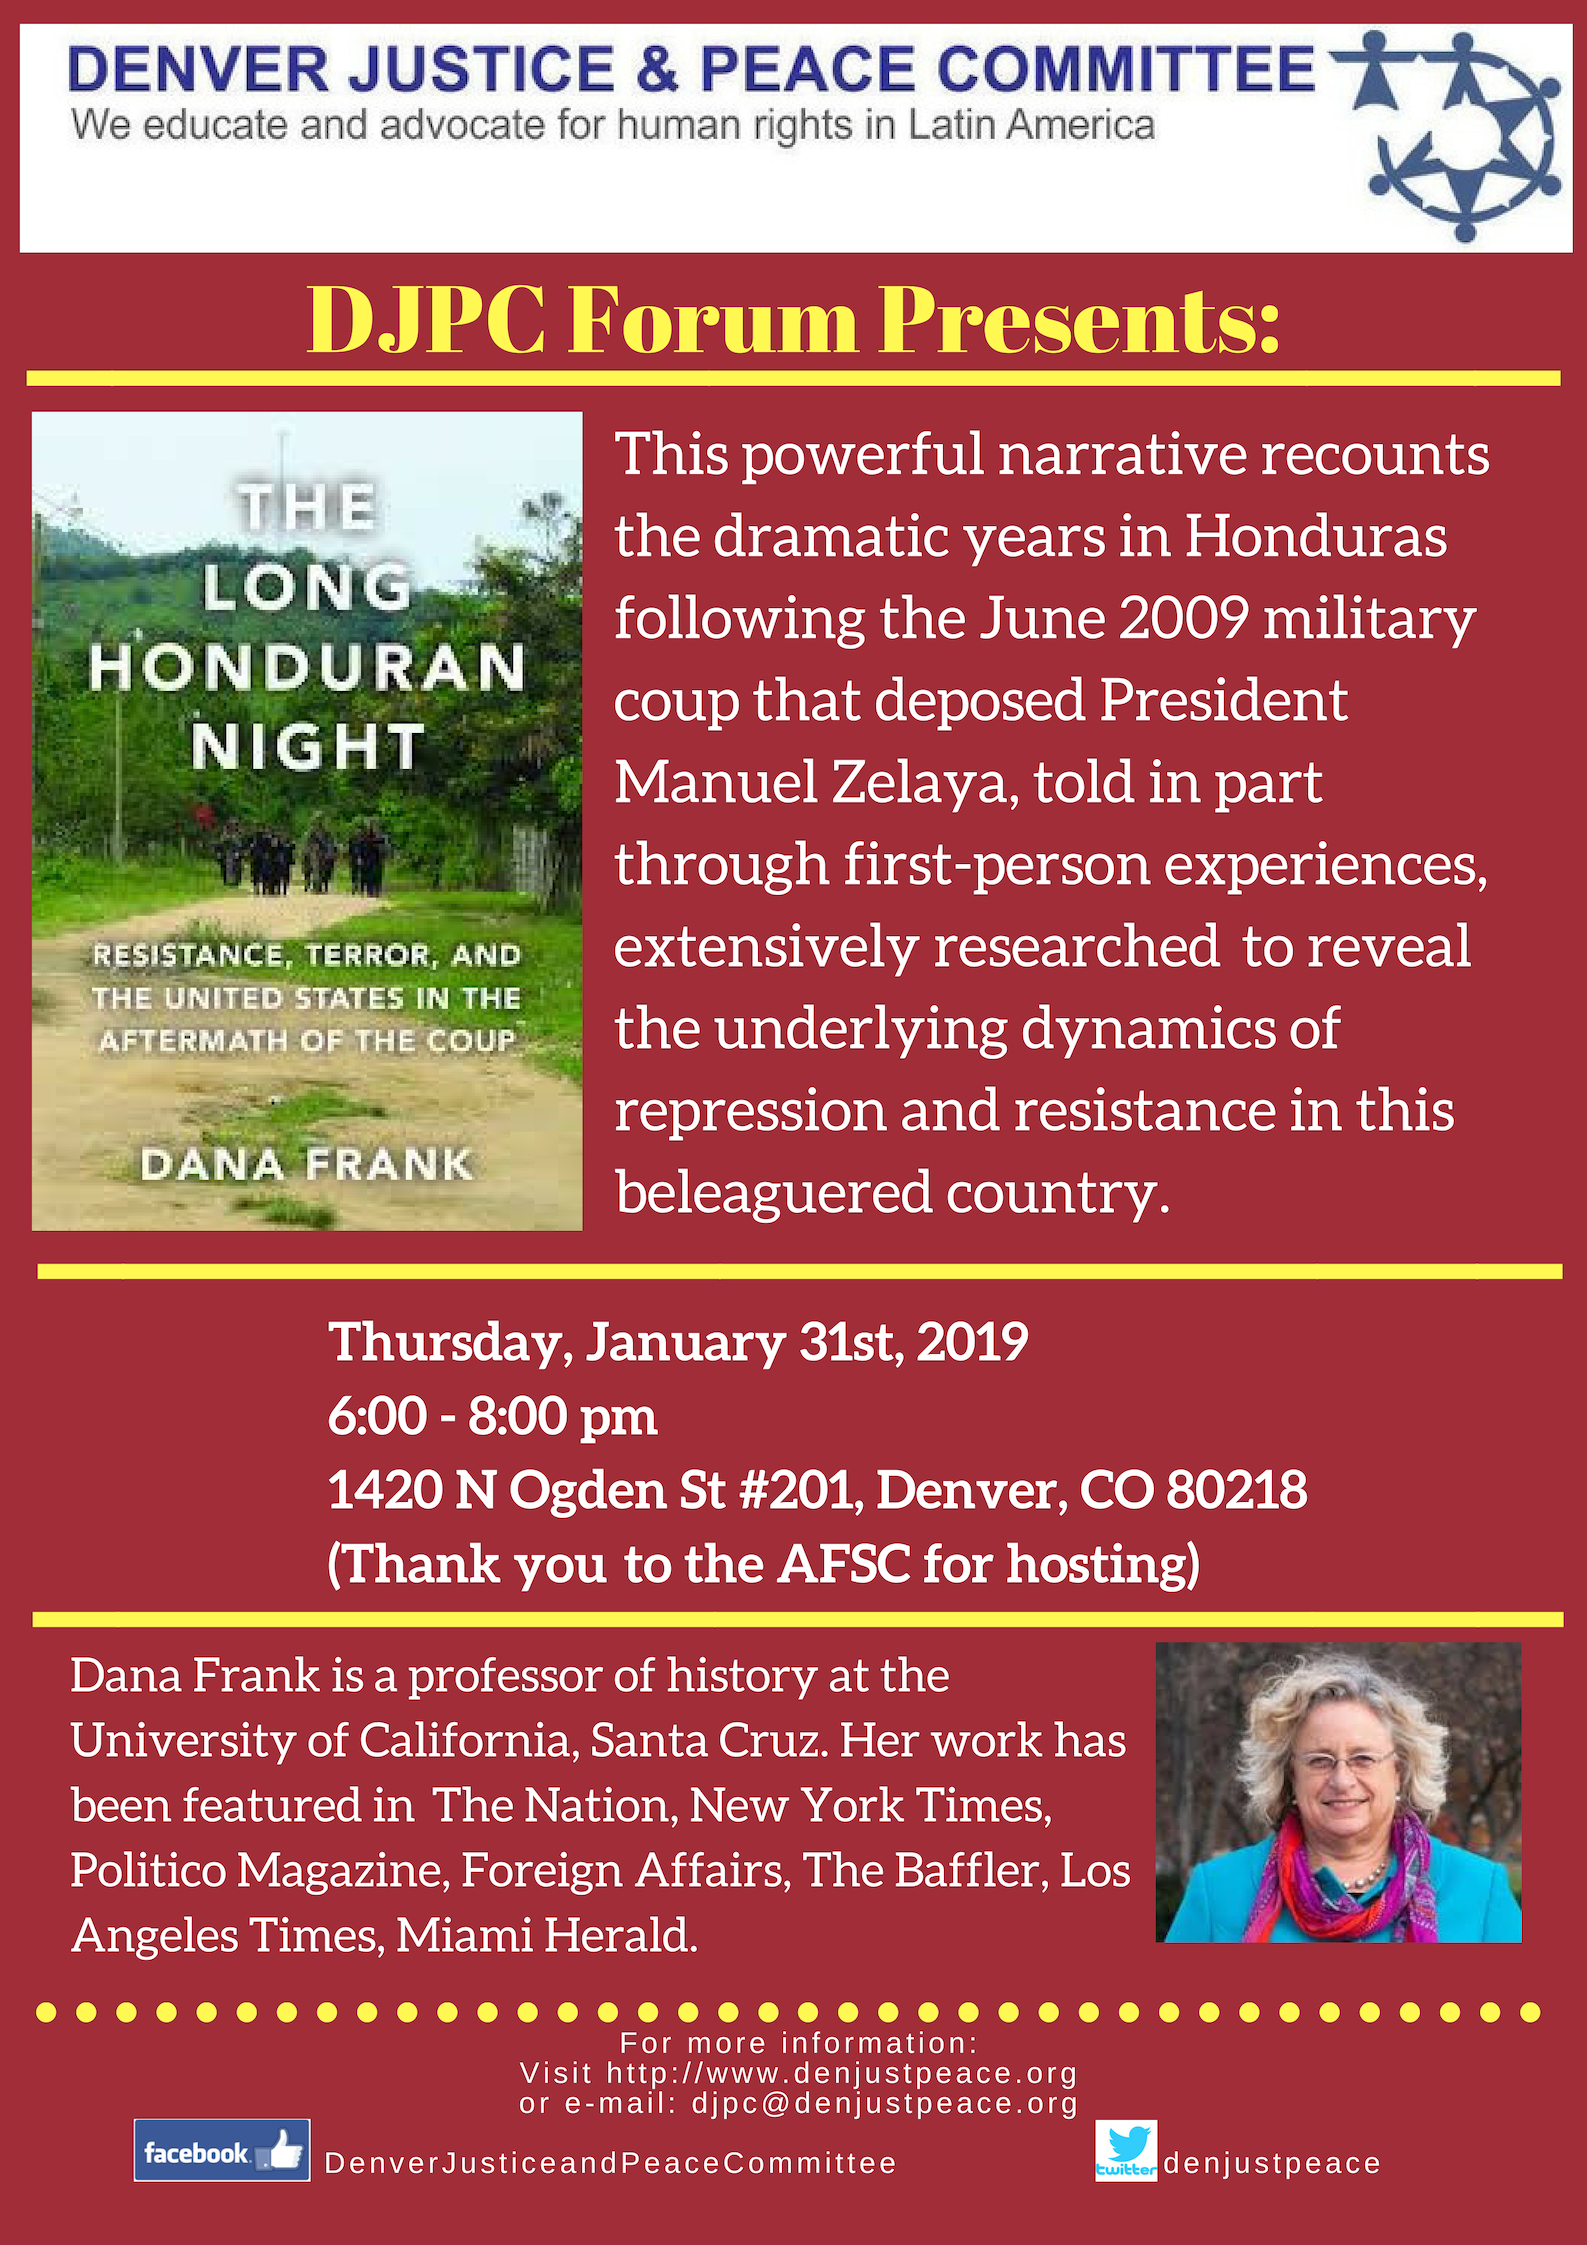 DJPC Forum: The Long Honduran Night with Dana Frank. January 31st at 6:00 pm.